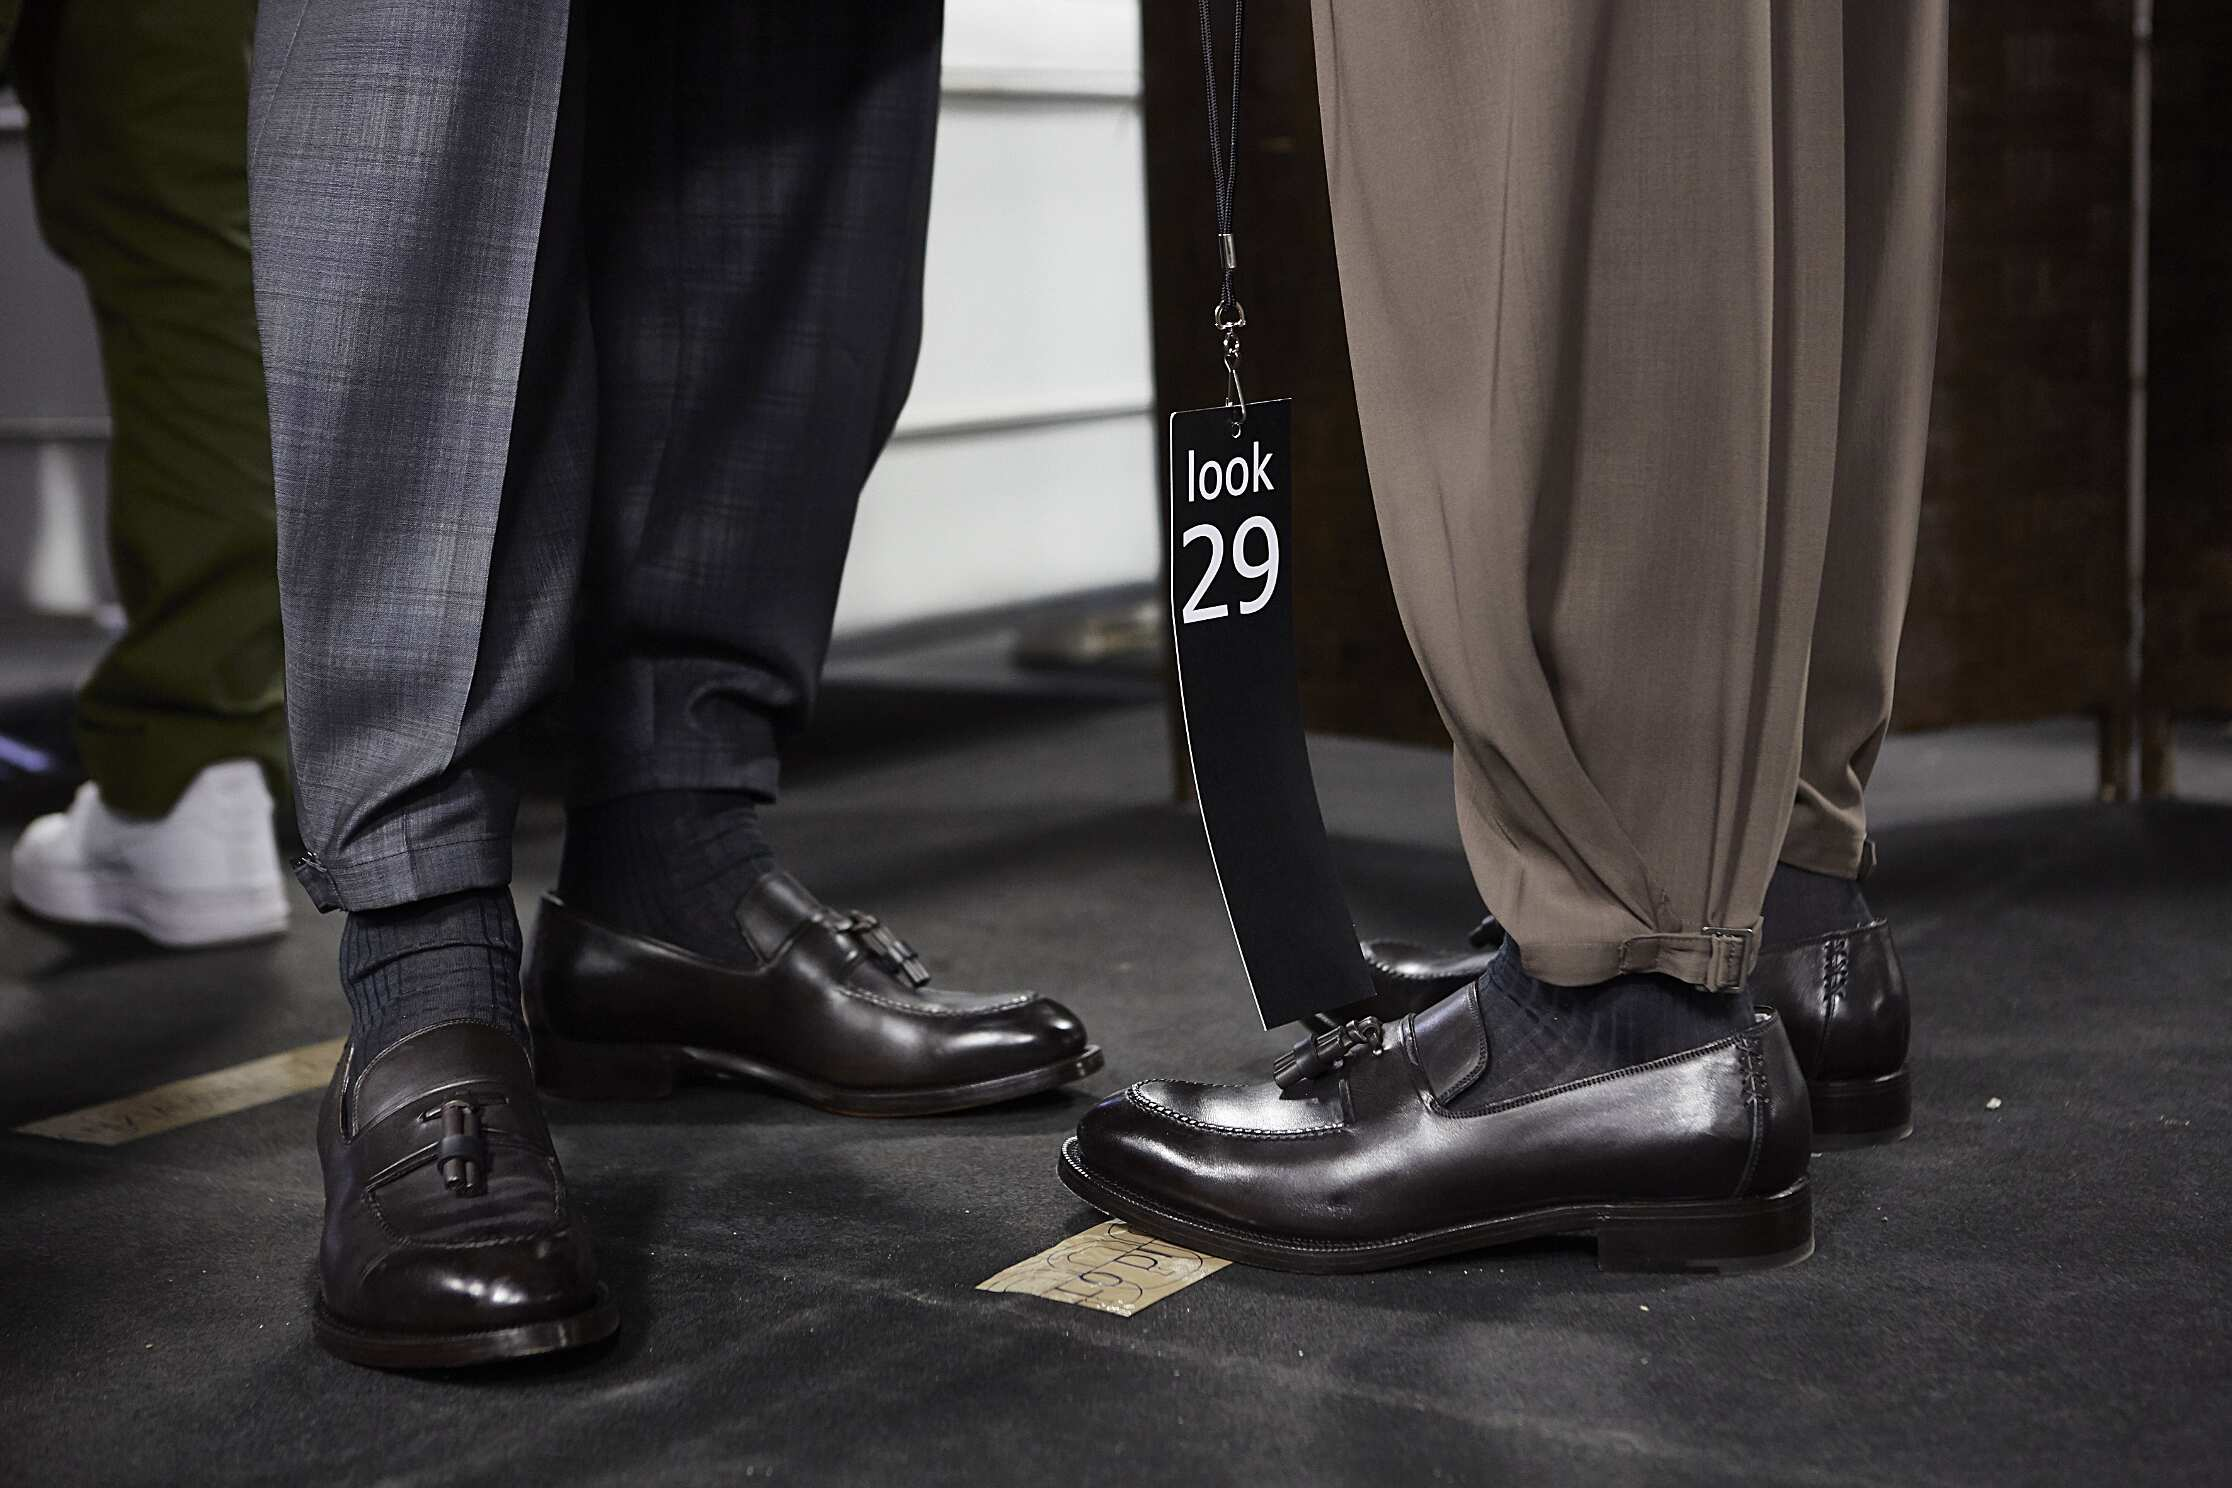 2016 Shoes Backstage Ermenegildo Zegna Couture